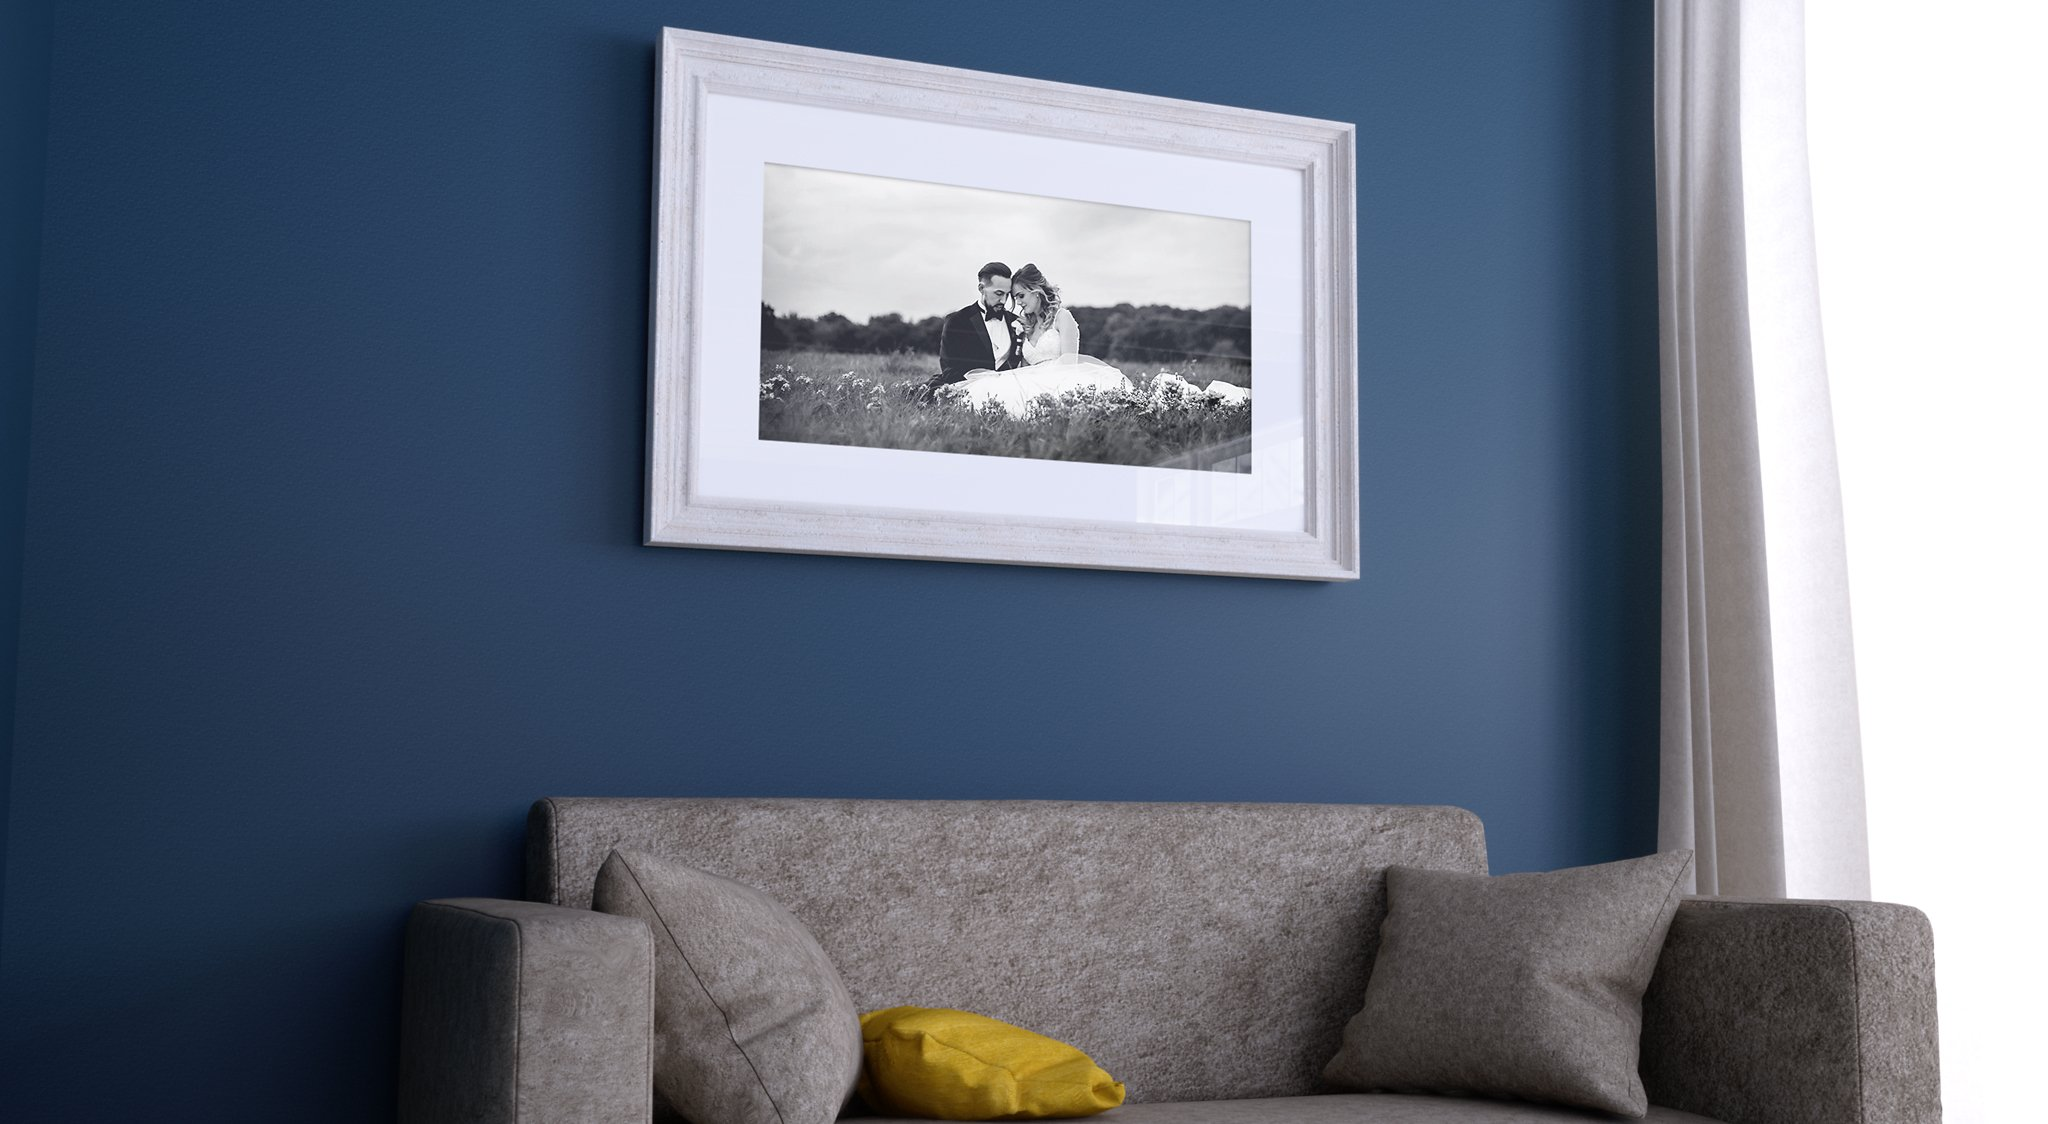 Framed wedding print in home to illustrate hoot use wedding photos for advice blog by esme robinson